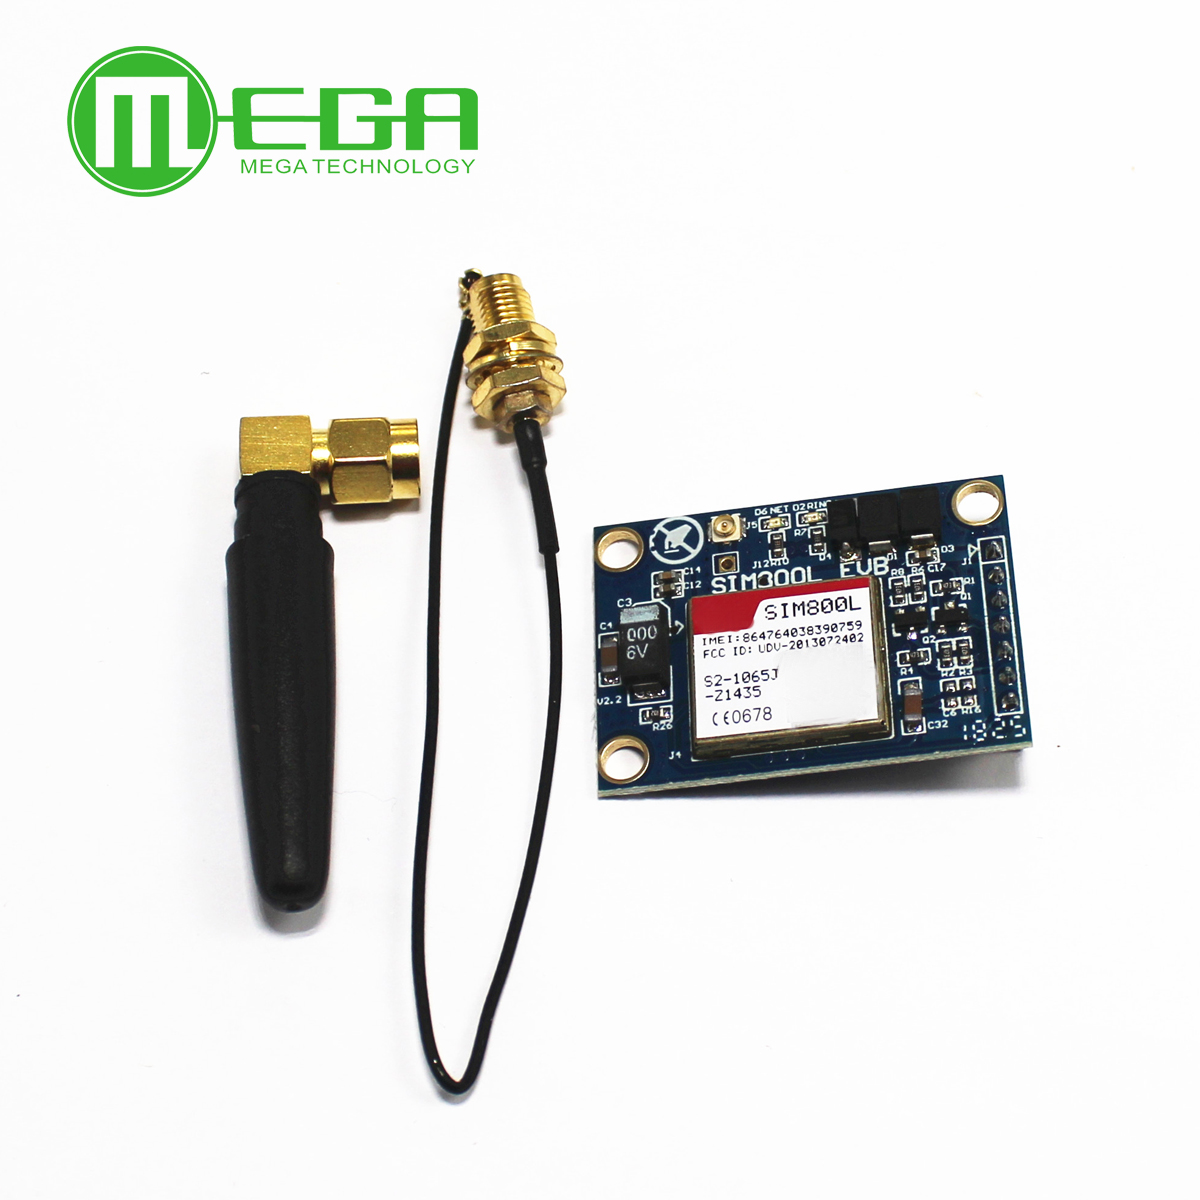 New SIM800L V2.0 5V Wireless GSM GPRS MODULE Quad-Band W/ Antenna Cable Cap